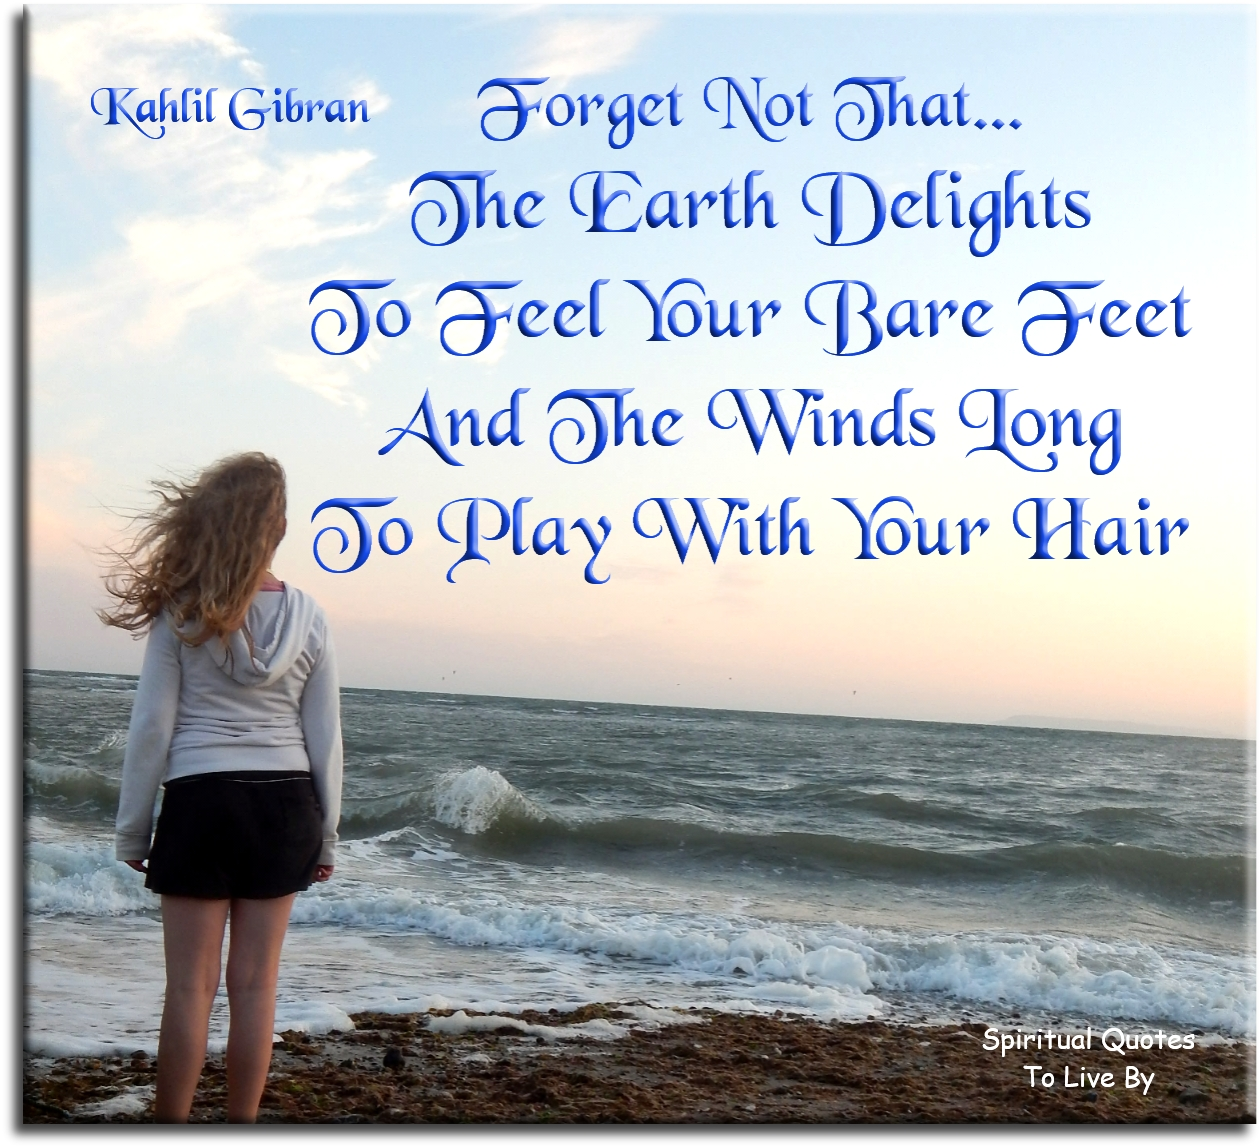 khalil Gibran quote: Forget not that the Earth delights to feel your bare feet and the winds long to play with your hair - Spiritual Quotes To Live By